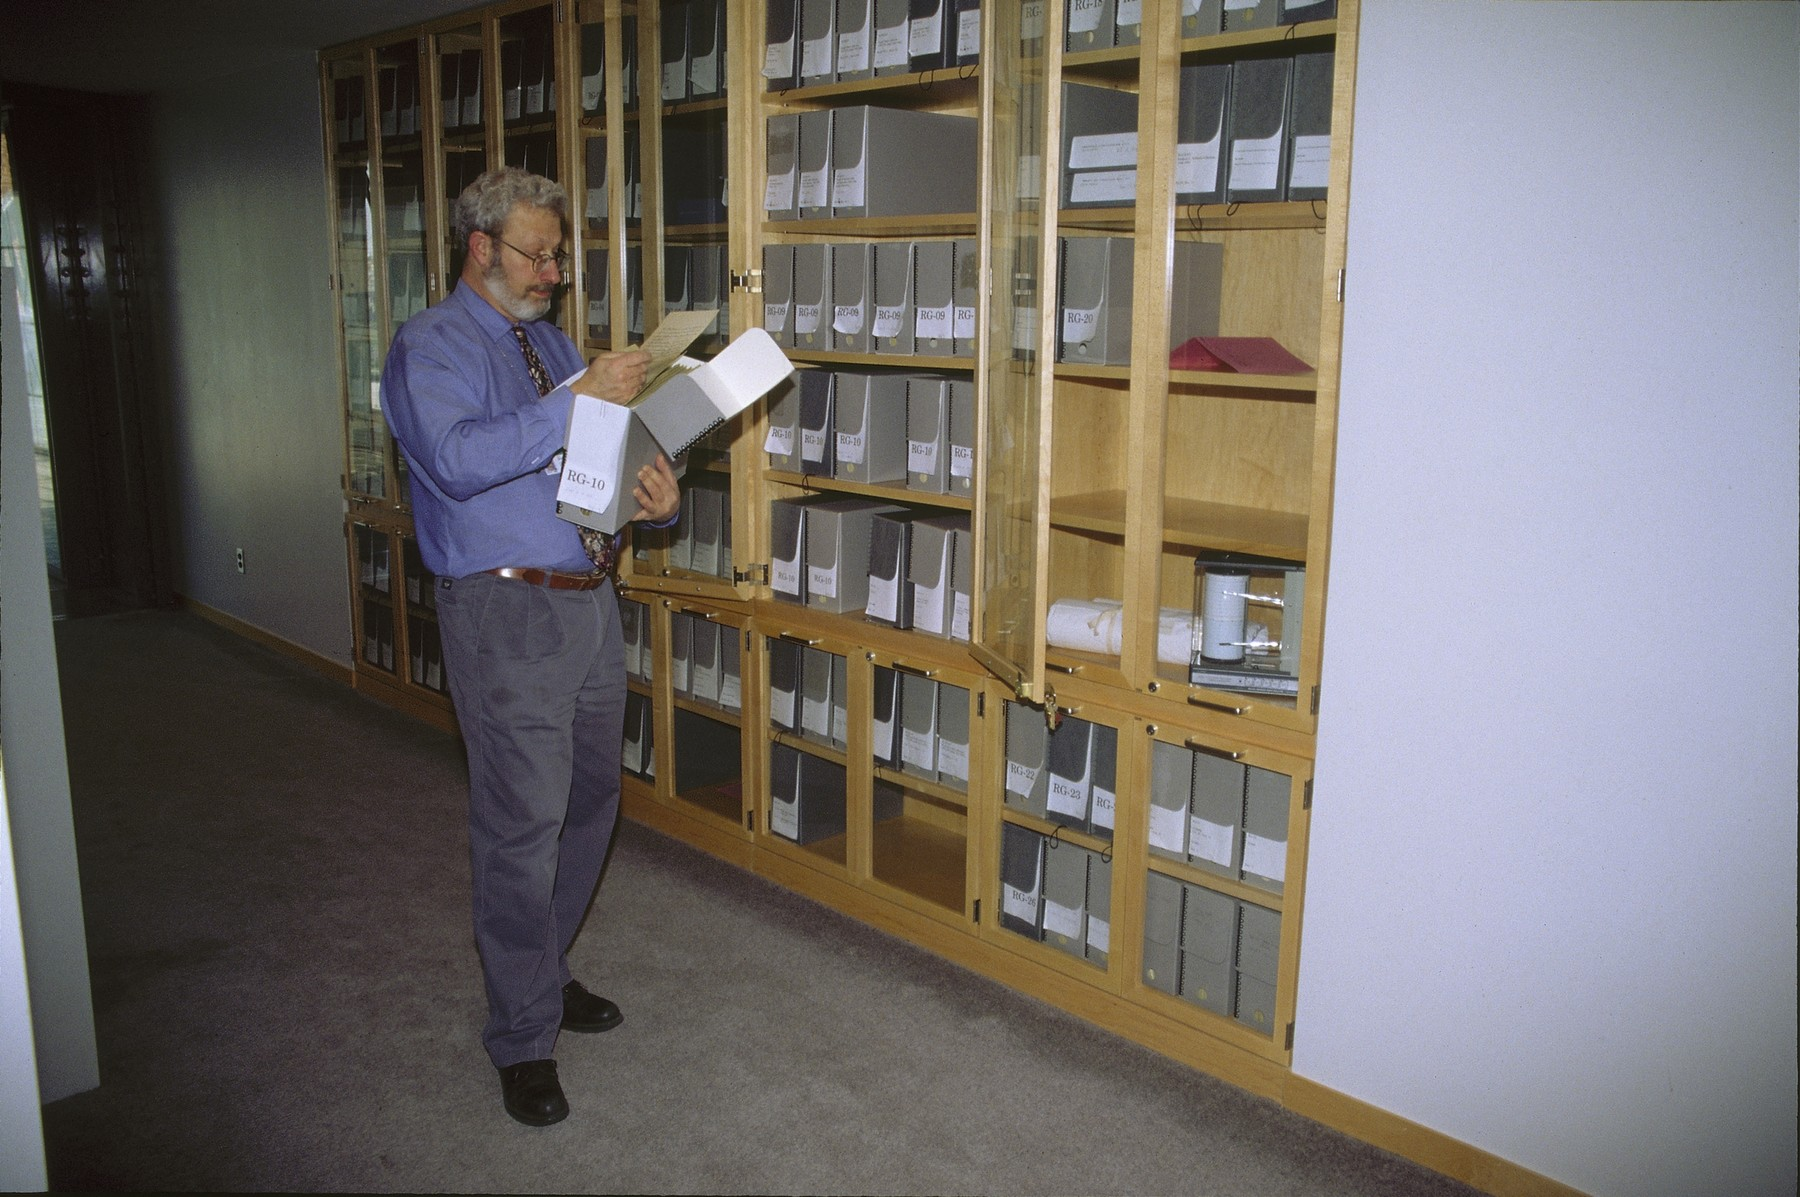 Chief Archivist Henry Mayer examines a document while standing in front of a row of glass cases on the fifth floor of the U.S. Holocaust Memorial Museum.